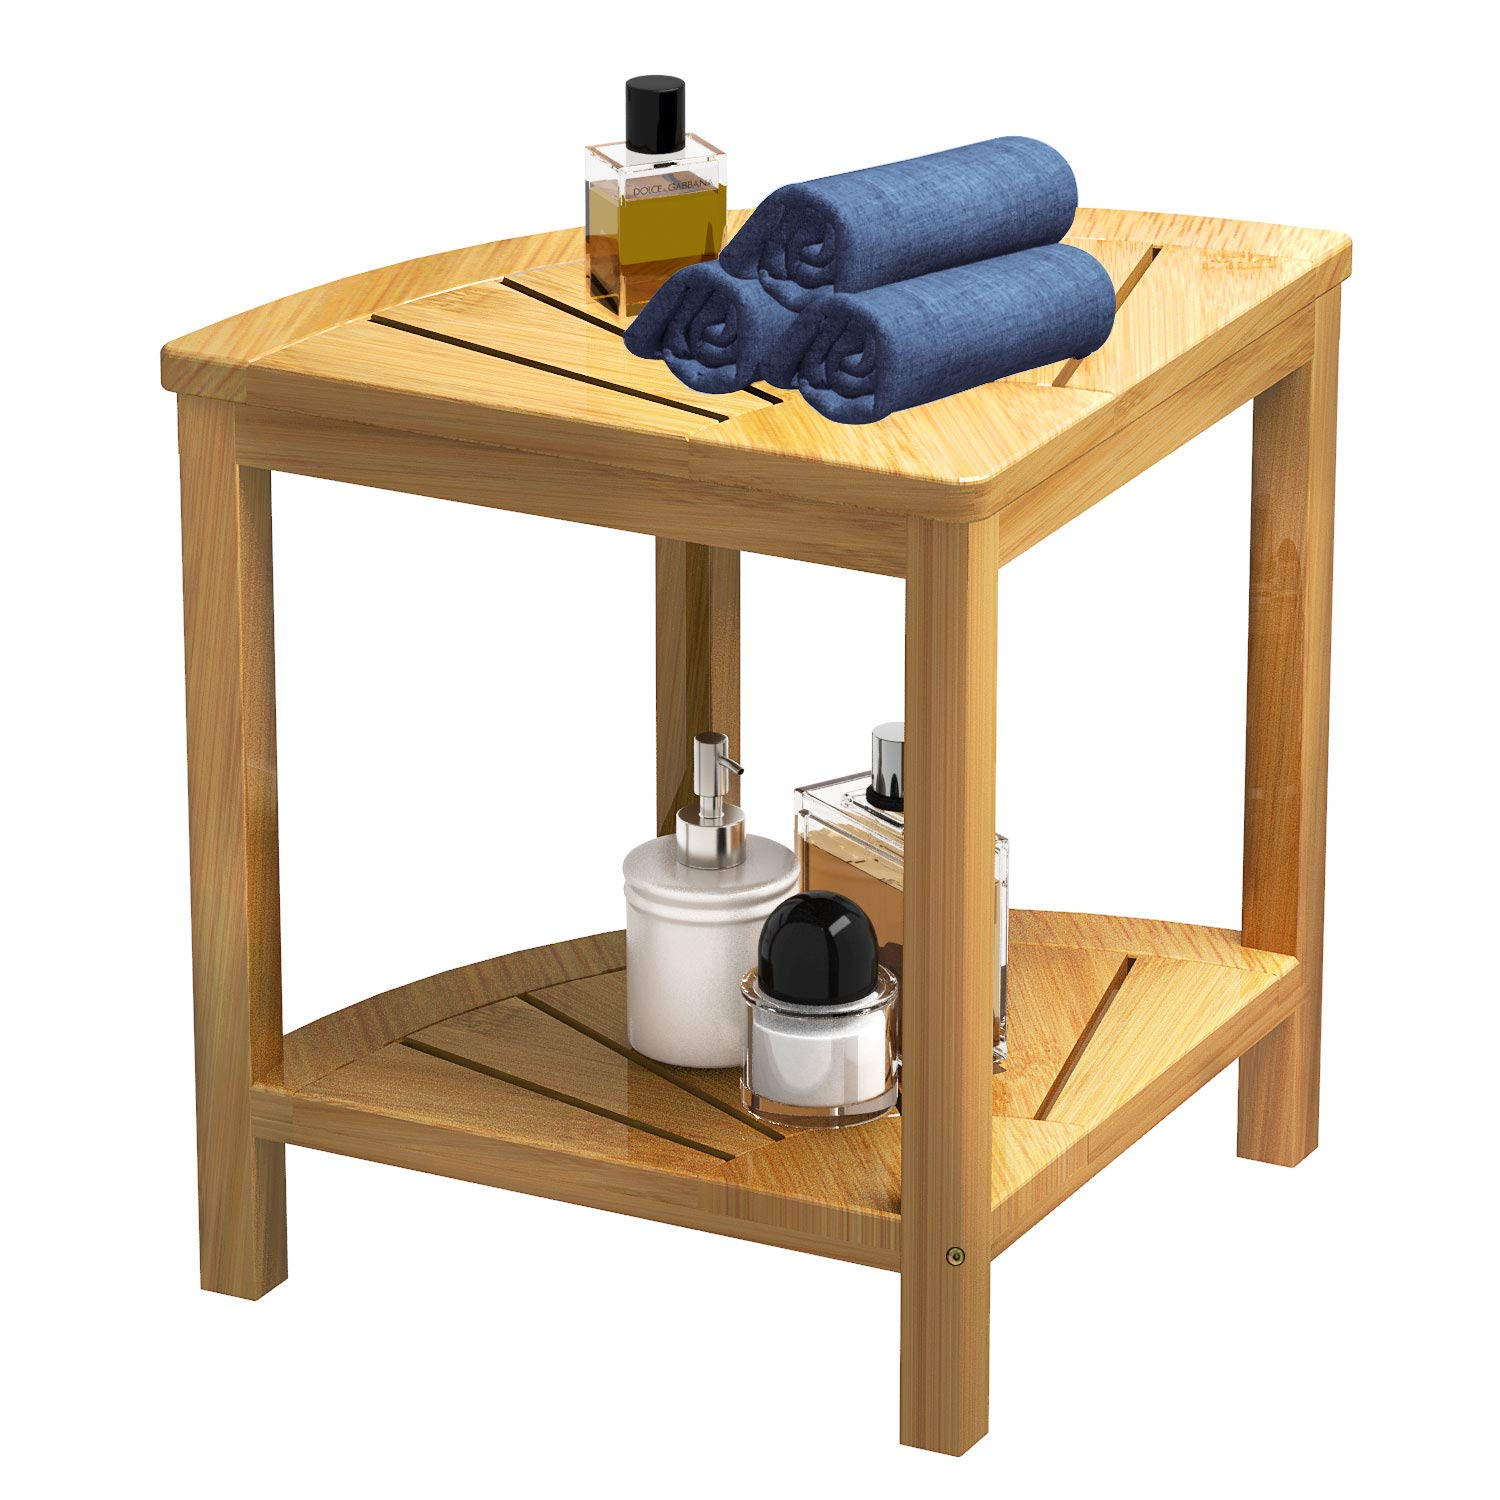 Shower Bench Stool Bamboo Mildew ProofCorner Storage with 2 Tier Large Organizer Space Perfect for Bathroom or Living Room Bamfan